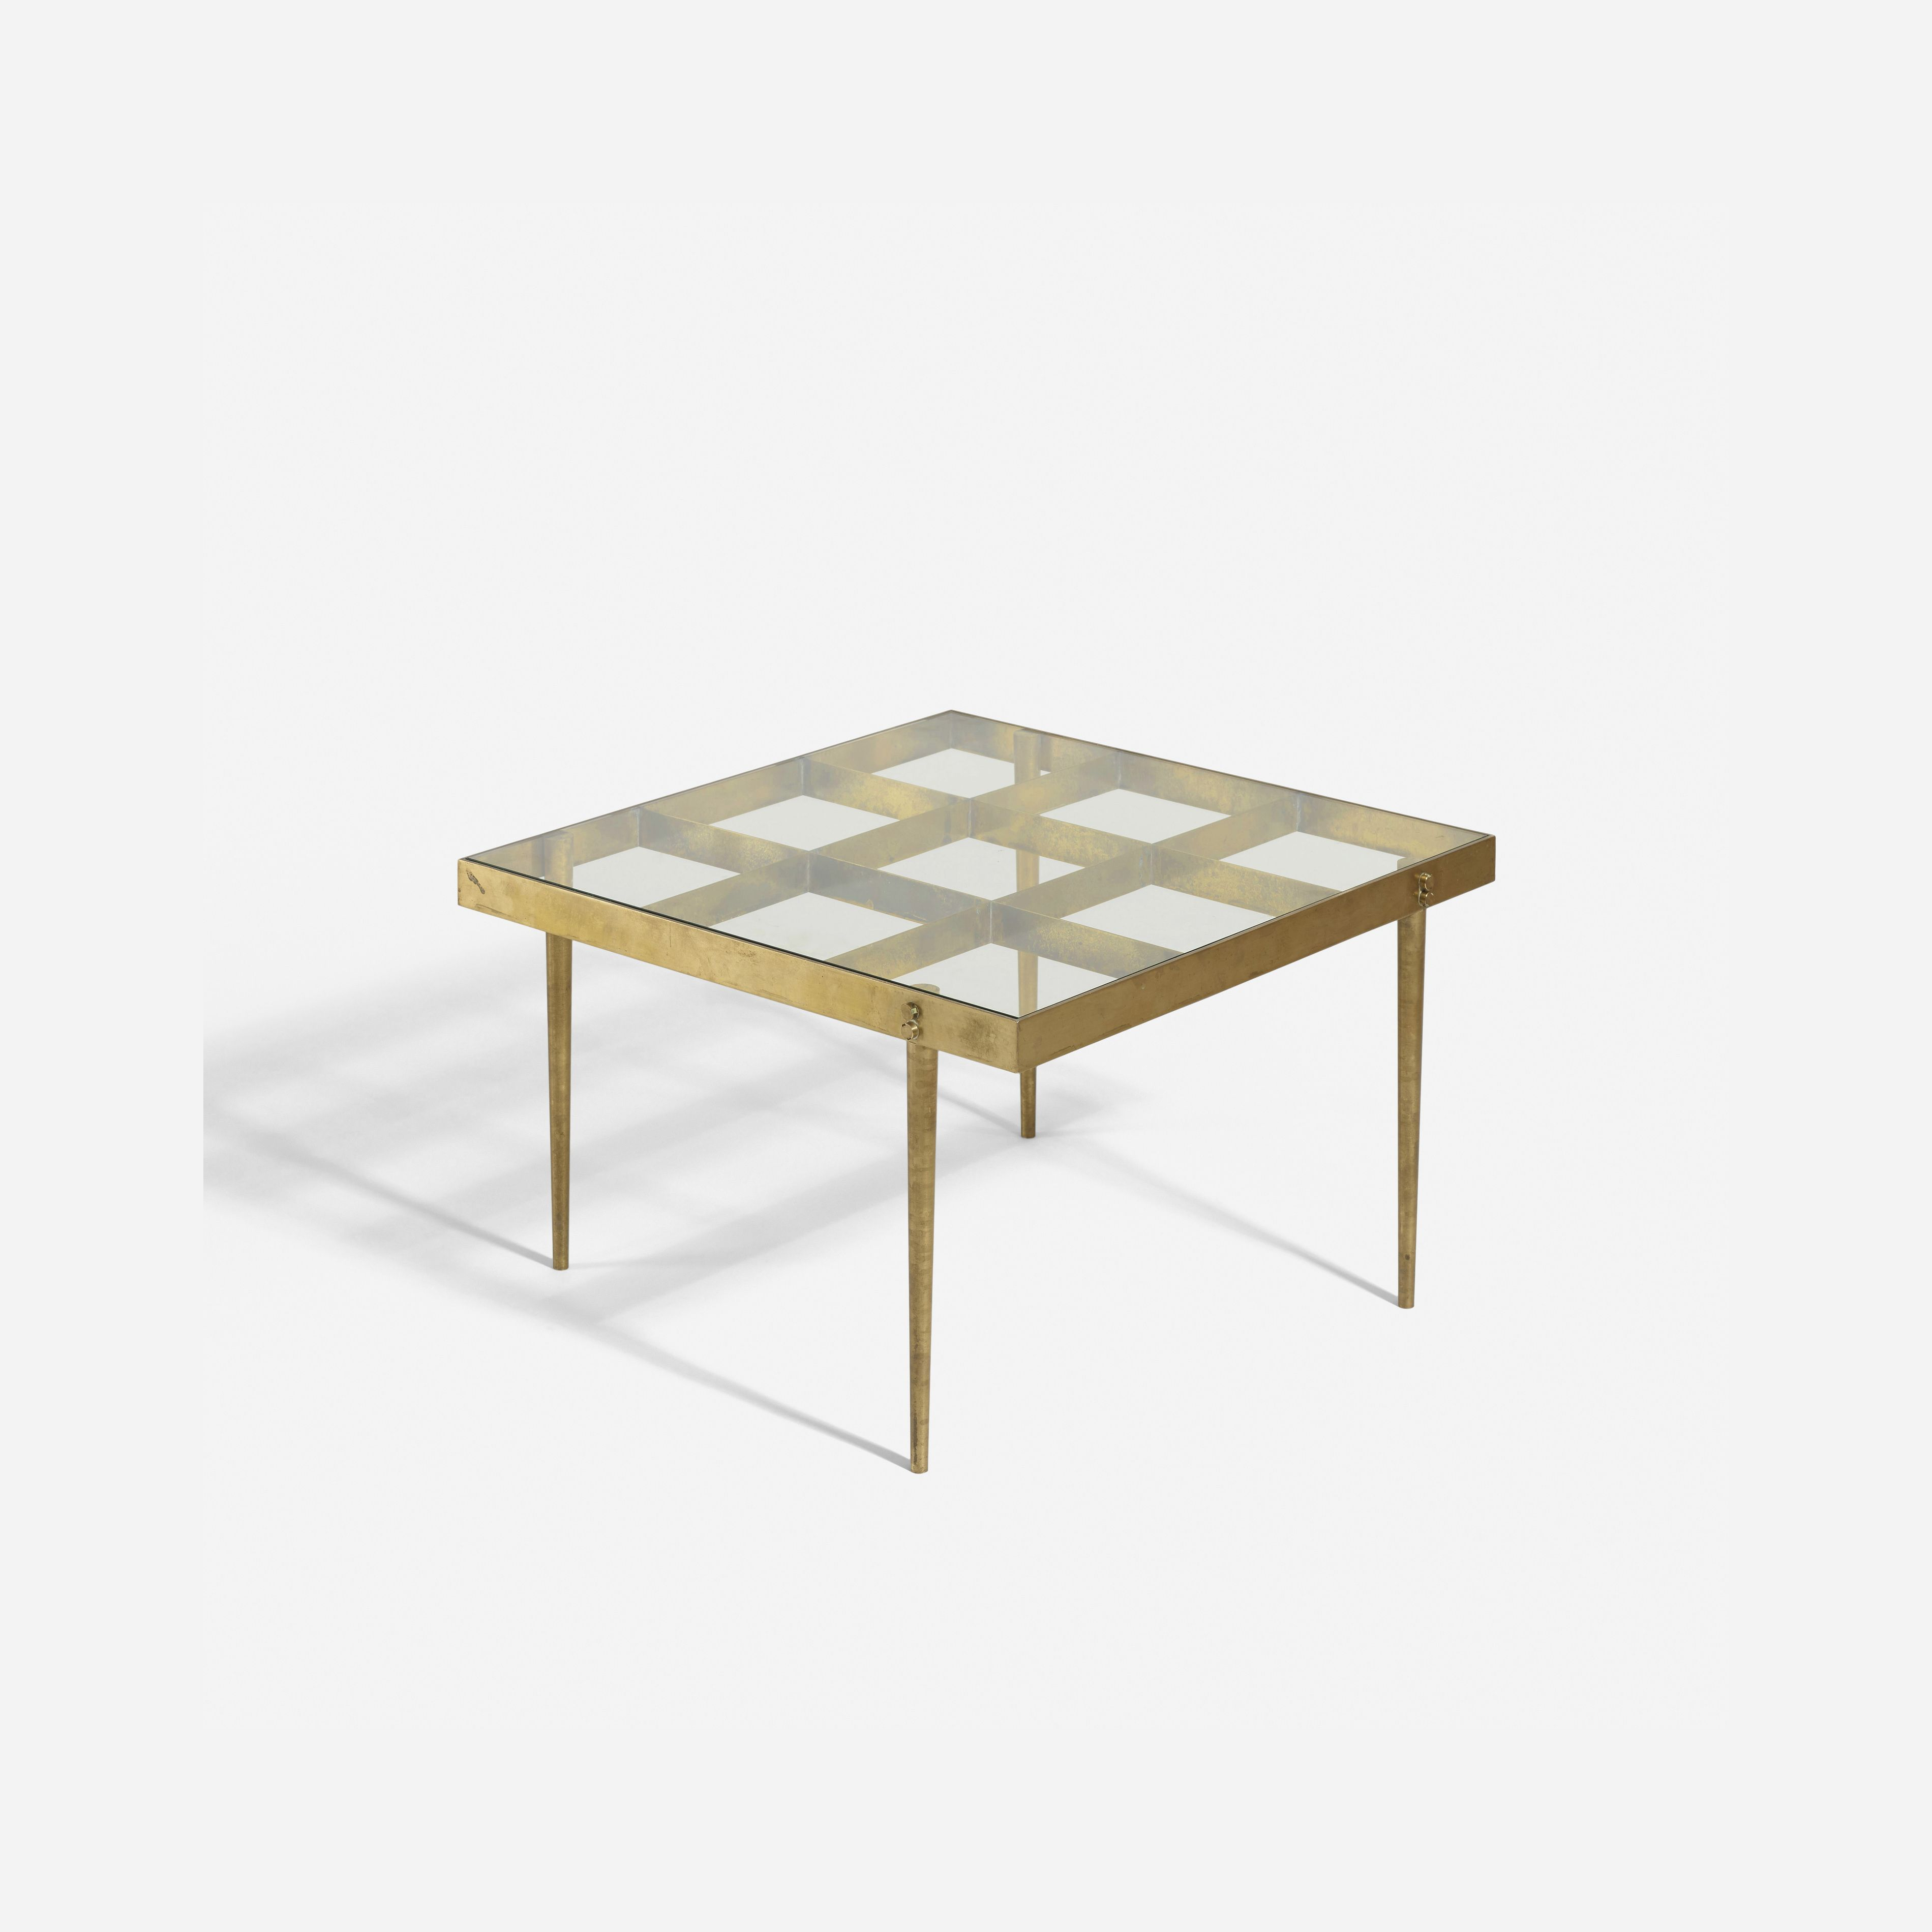 Lot 239 In the manner of Gio Ponti coffee table 1955 brass